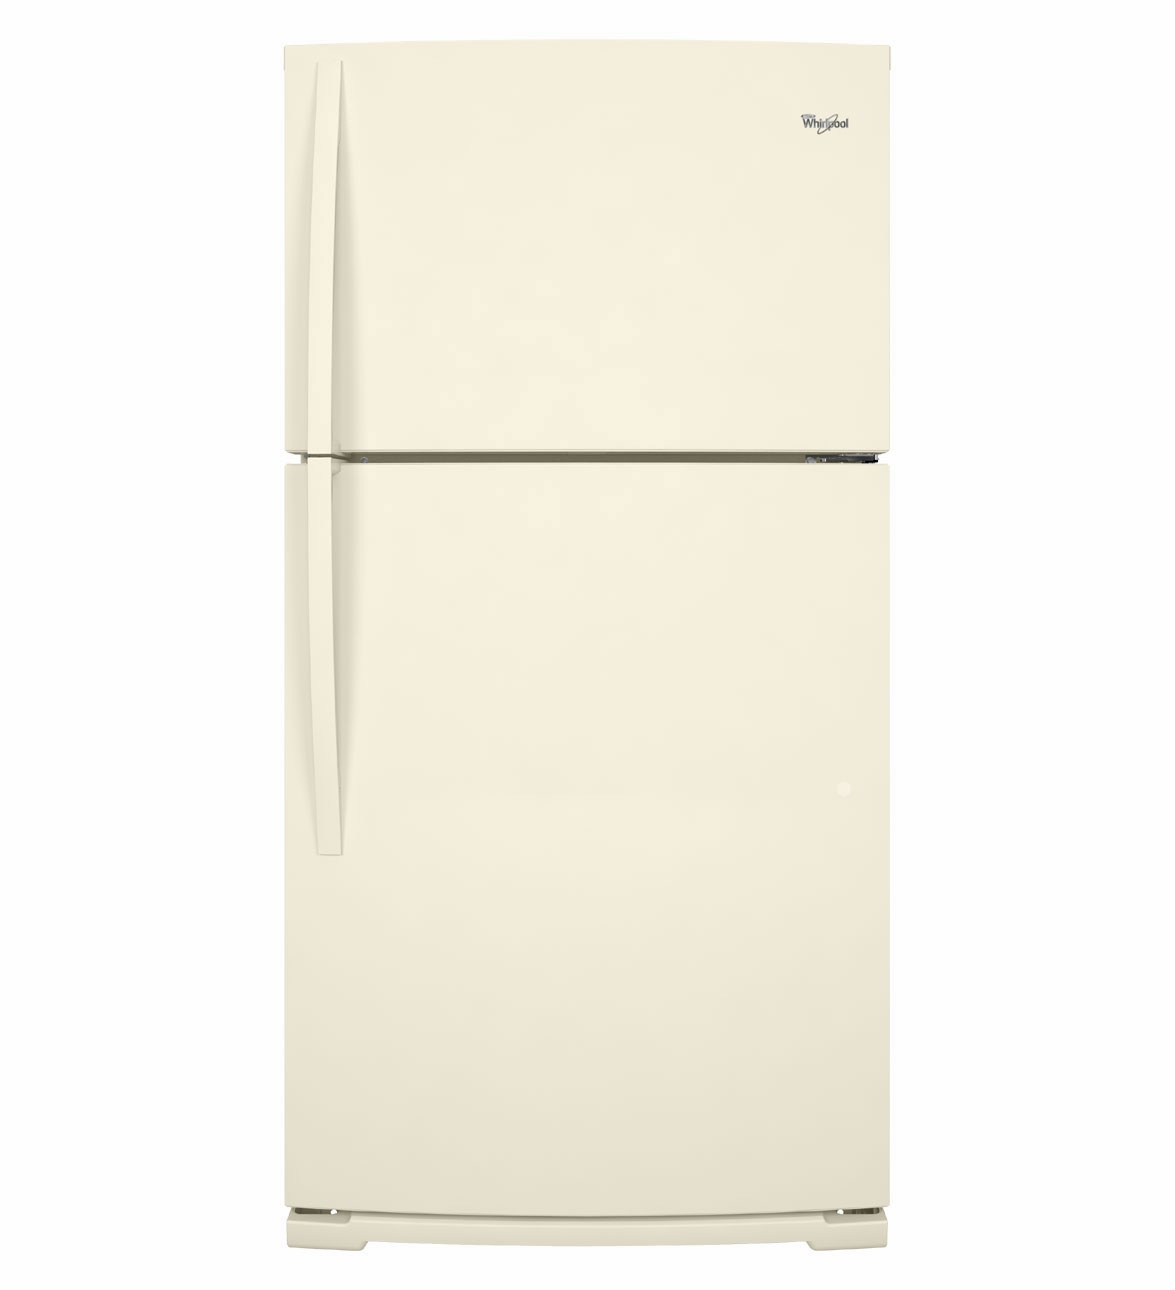 Whirlpool refrigerator brand bisque wrt311sfyt refrigerator for 0 1 couch to fridge